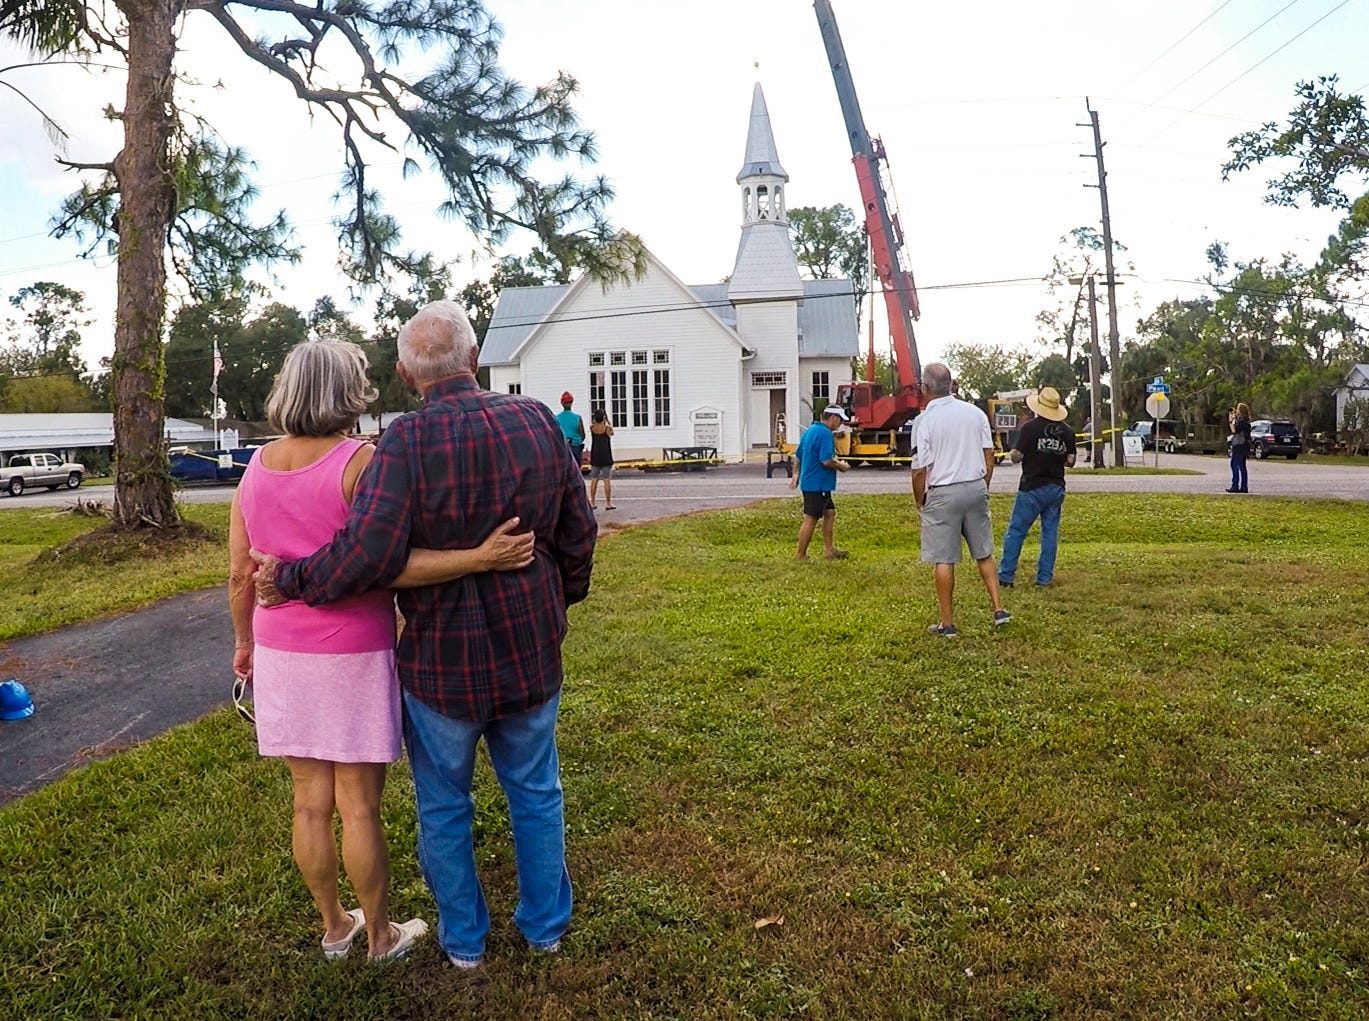 Alva Methodist church got a new steeple after Irma toppled its last one. They are thankful for all the donations that helped cover the cost of the deductible so they could replace it. This one has been built and installed with hurricane standards.